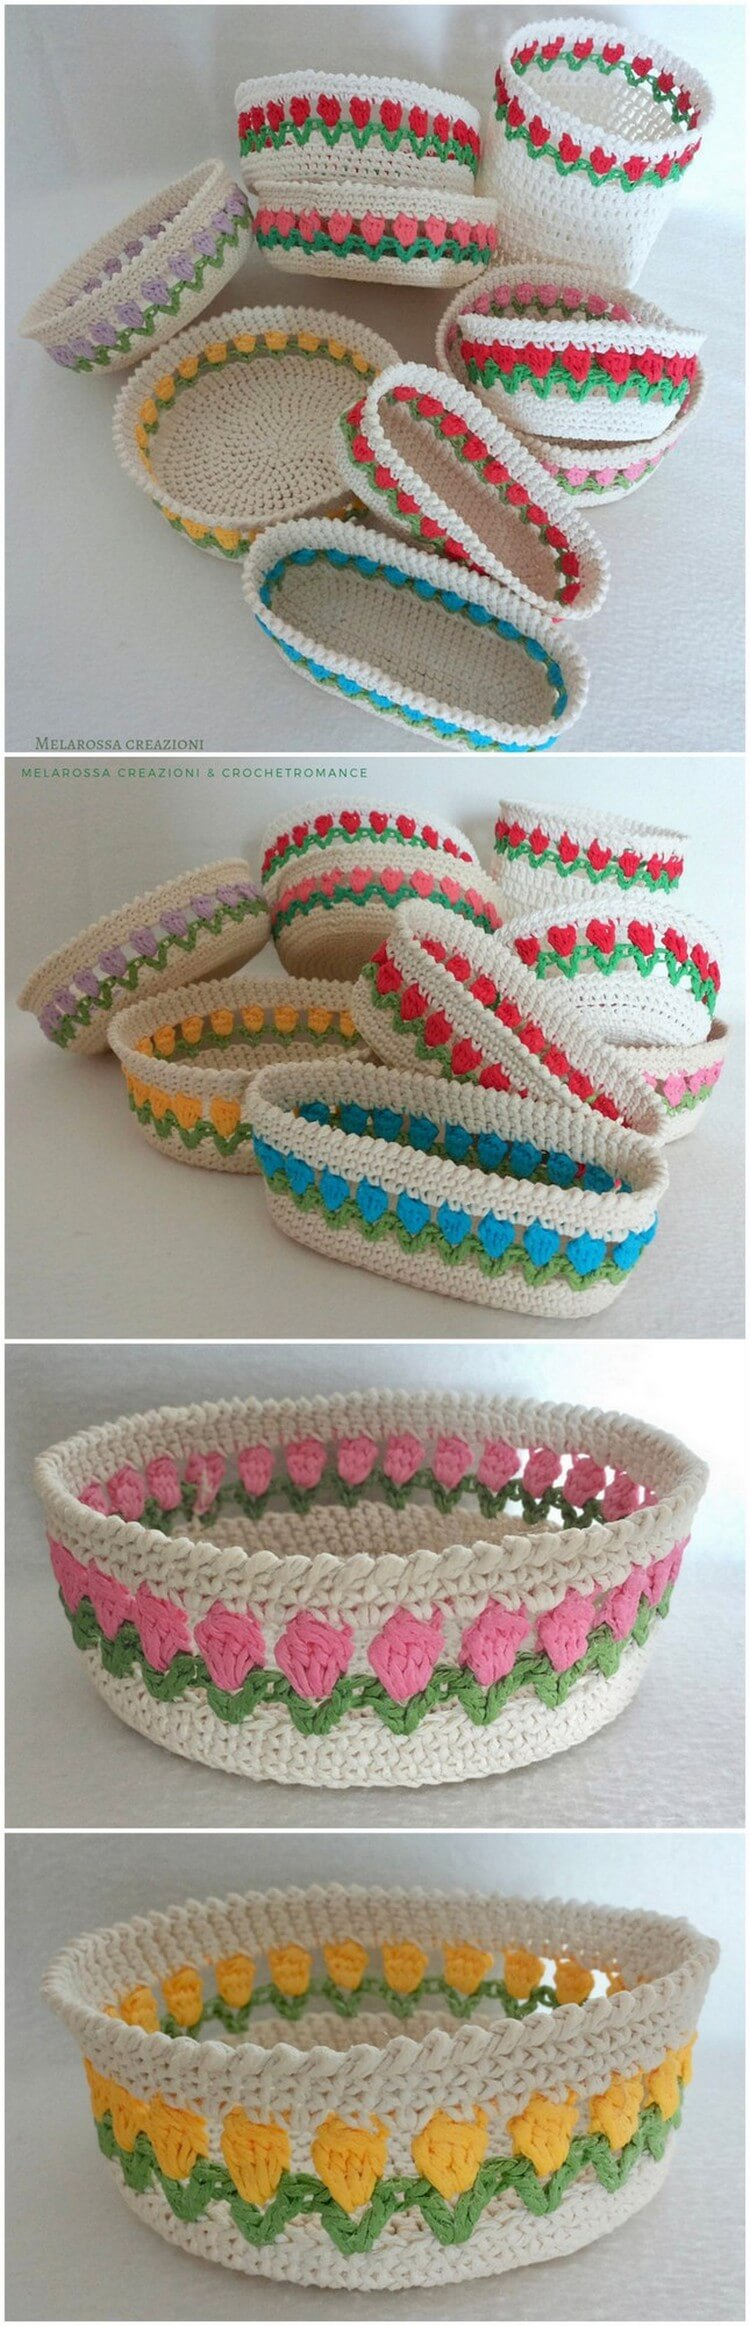 Crochet Basket Pattern (68)